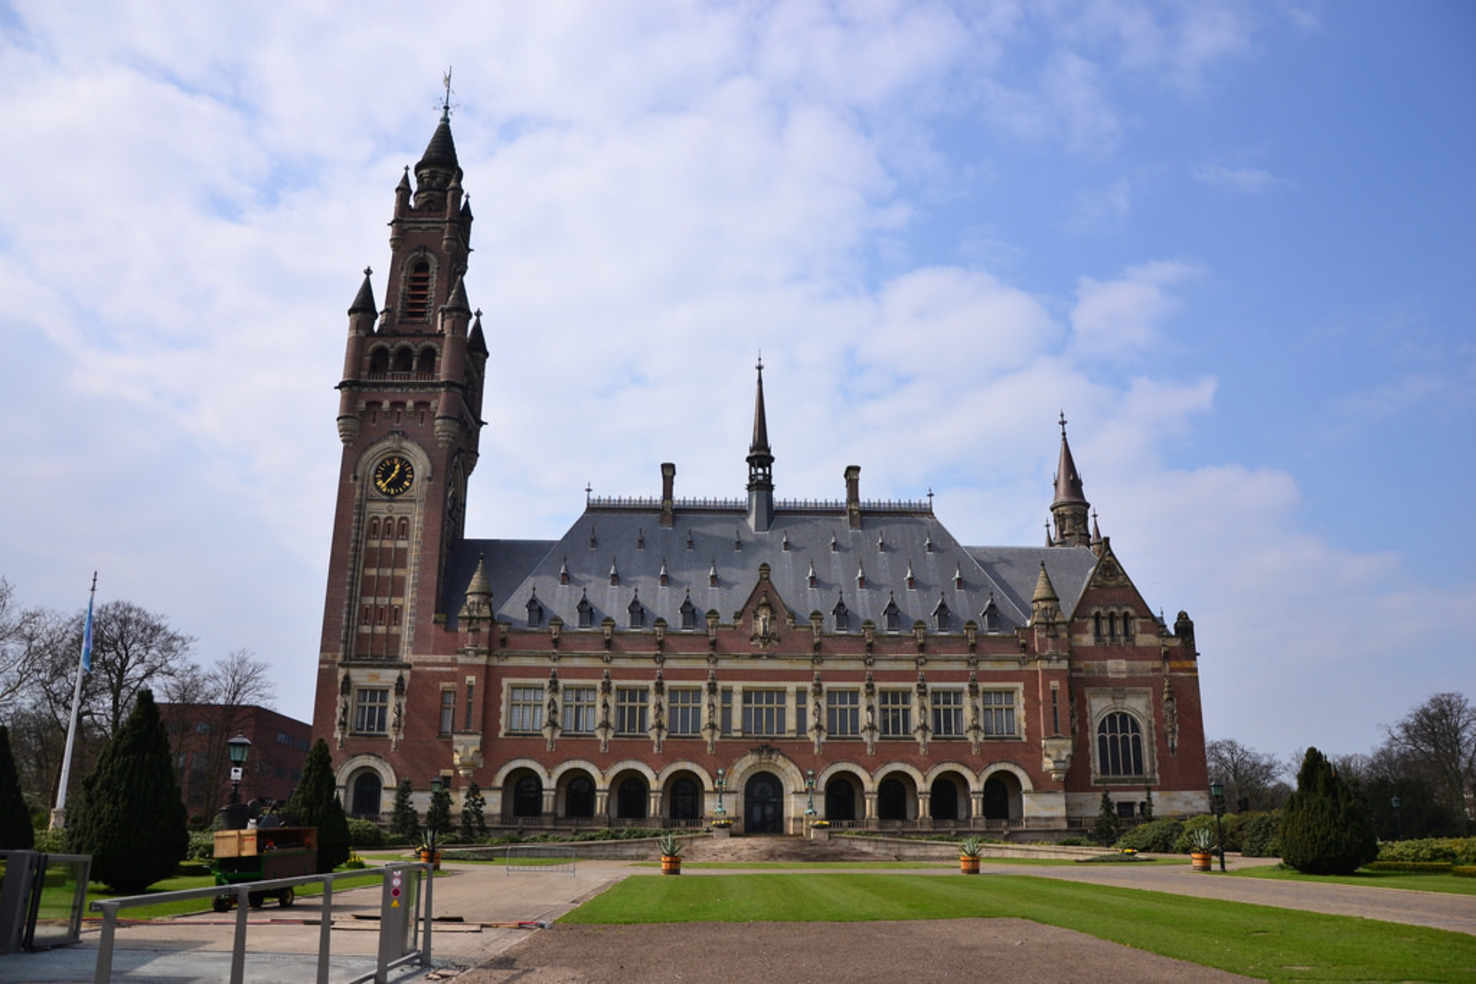 Large peace palace